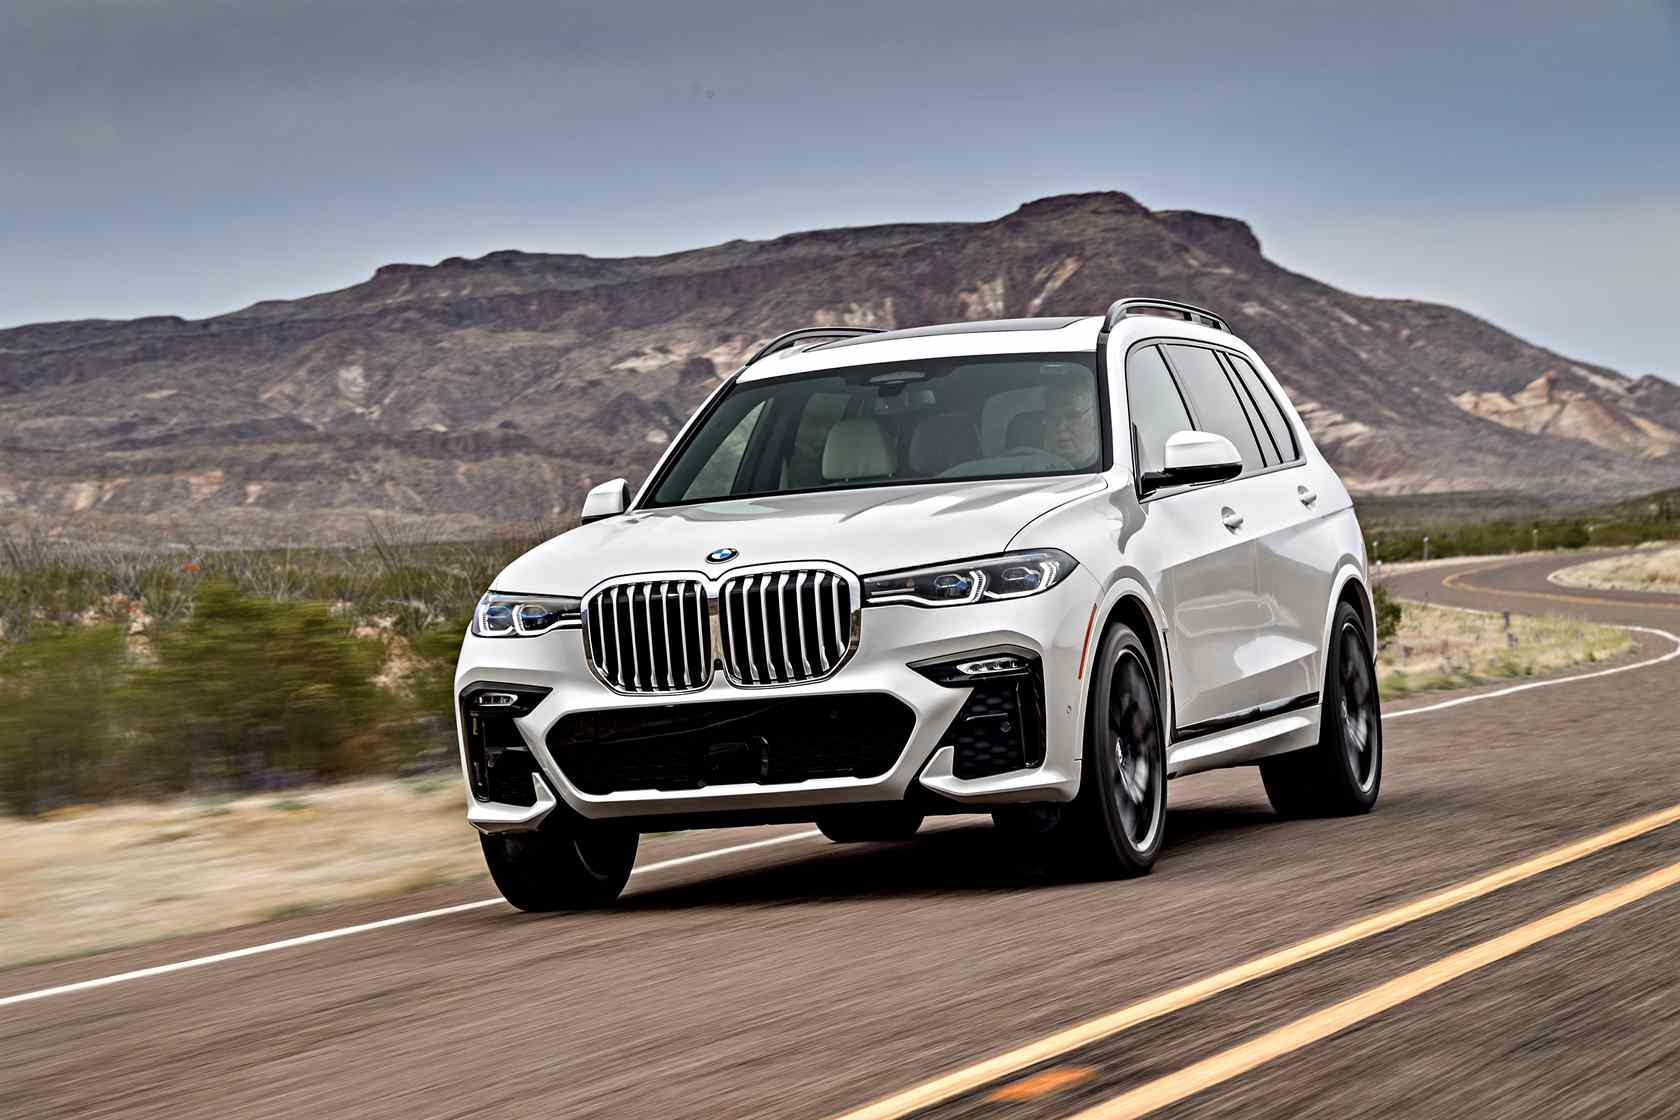 2019 BMW X7 First Drive: Unexpected agility in a 7-seat